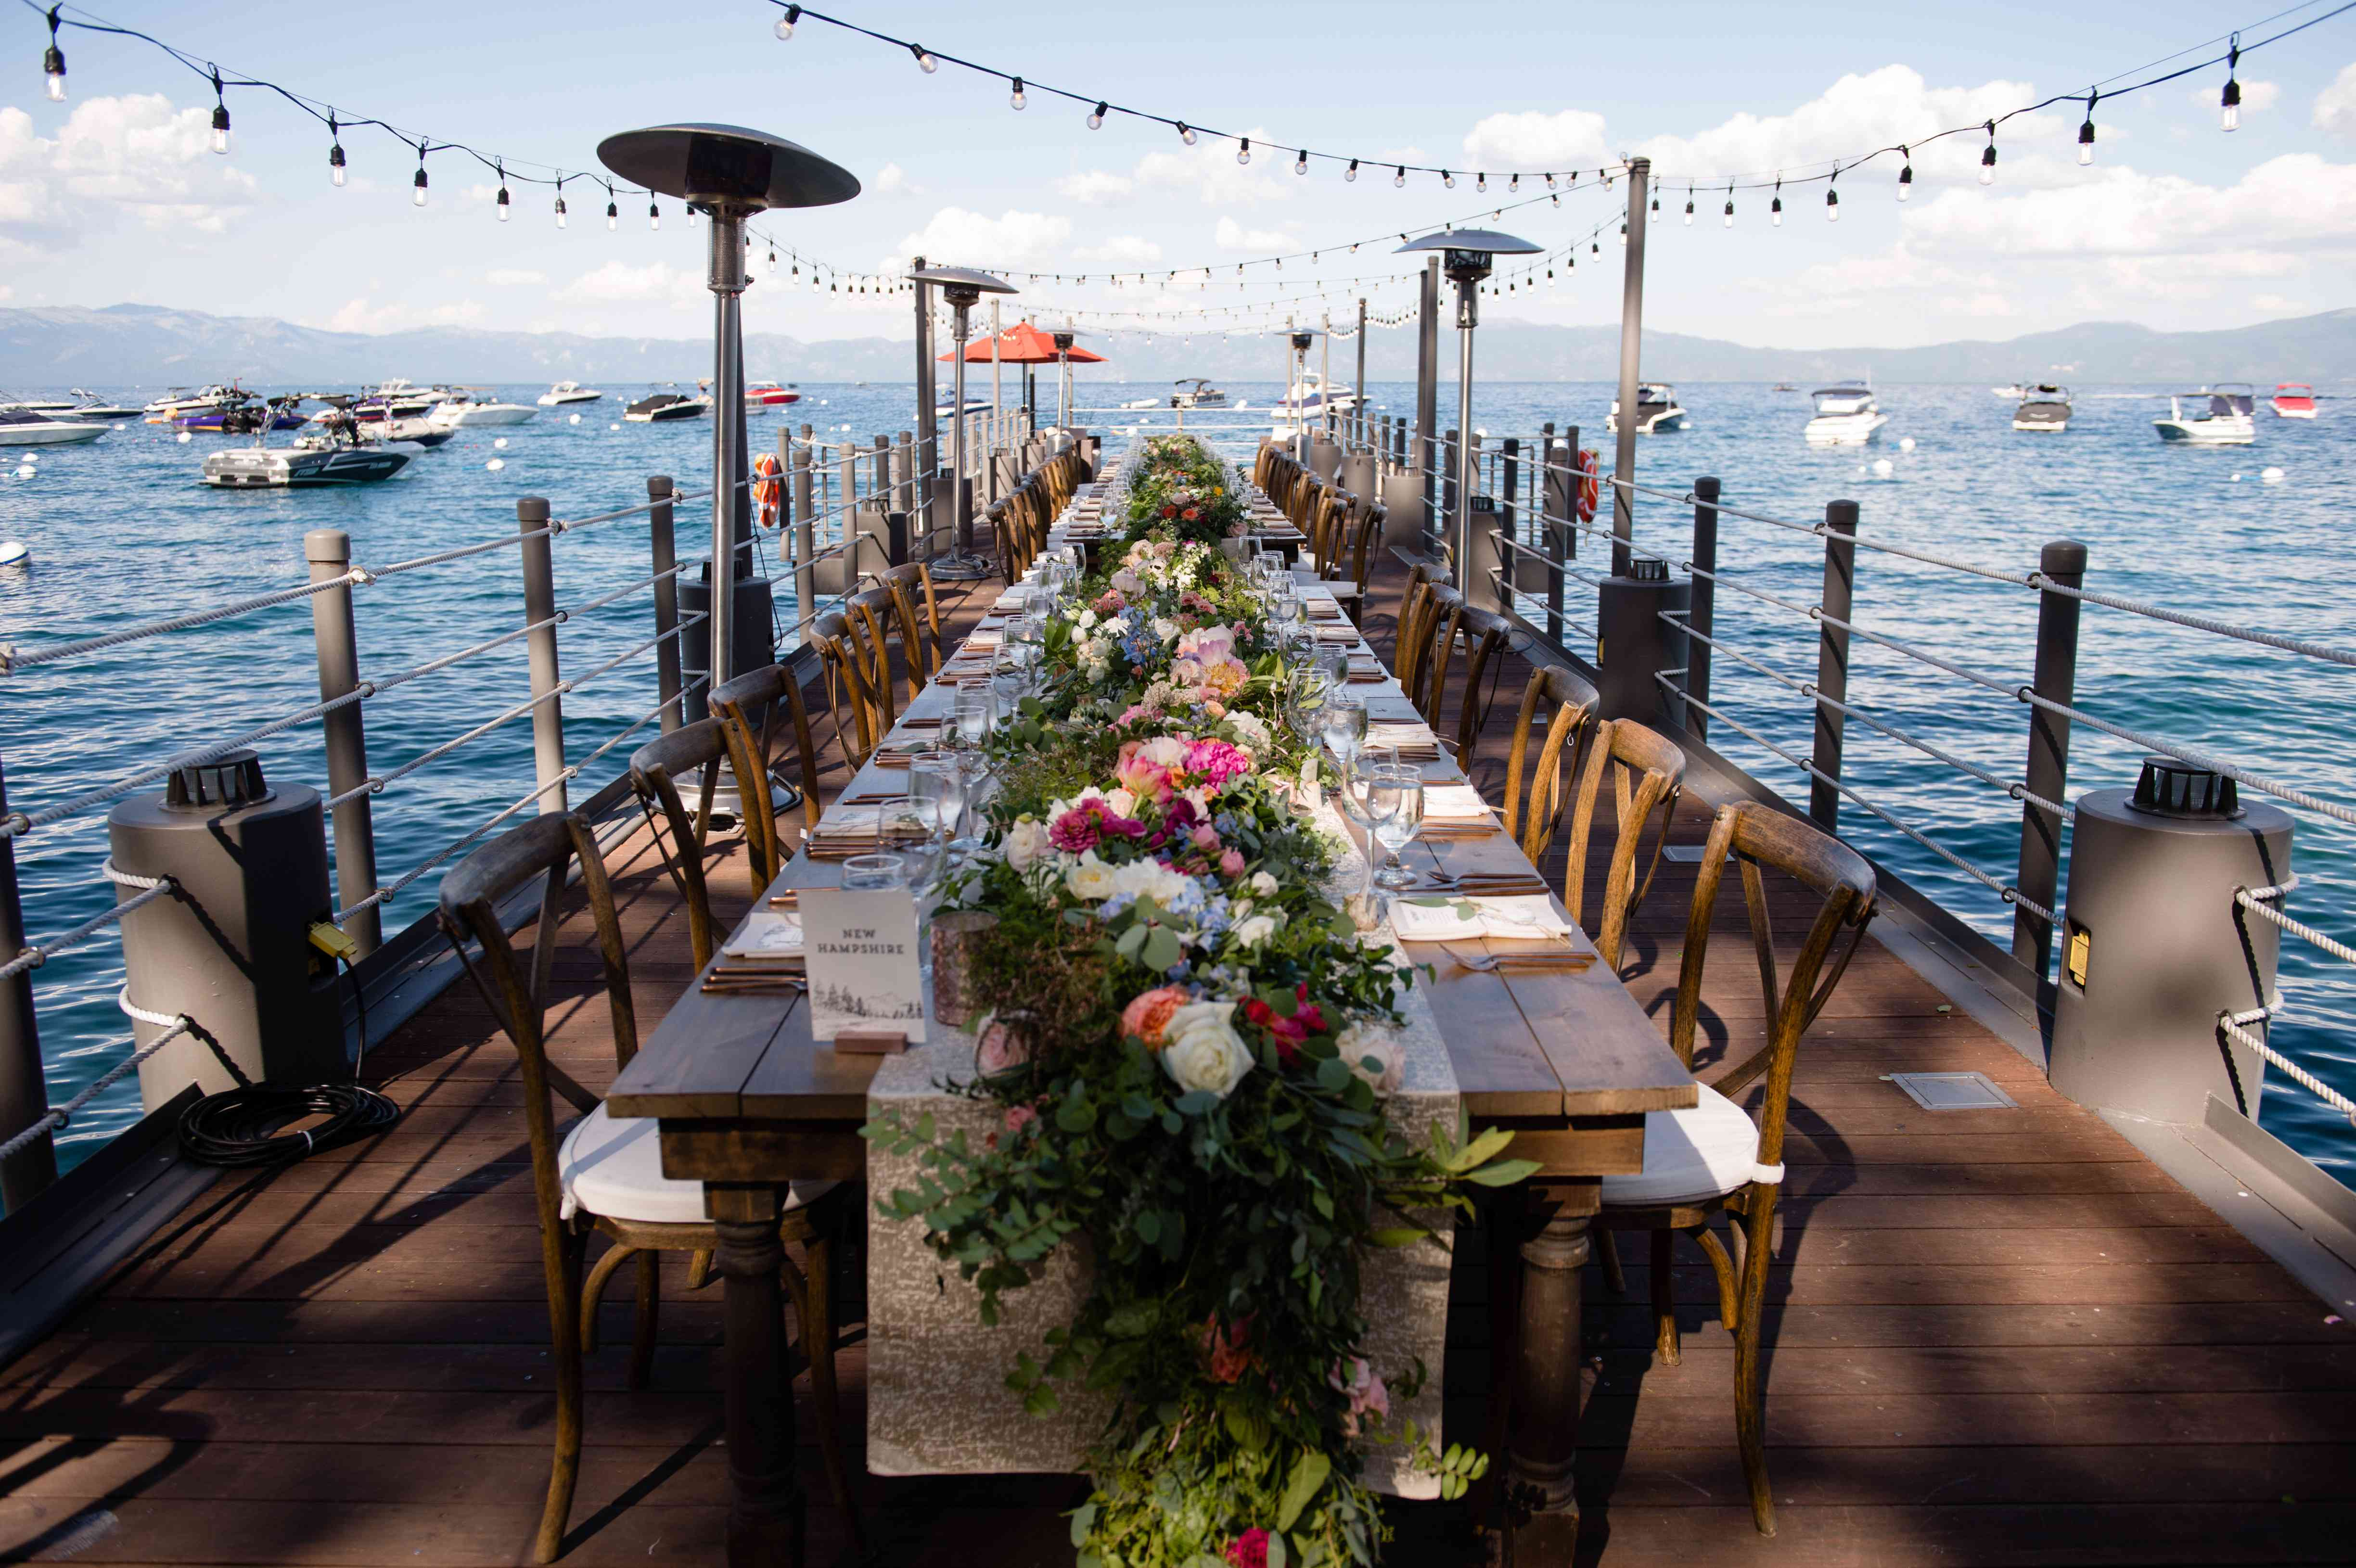 dinner table on the dock